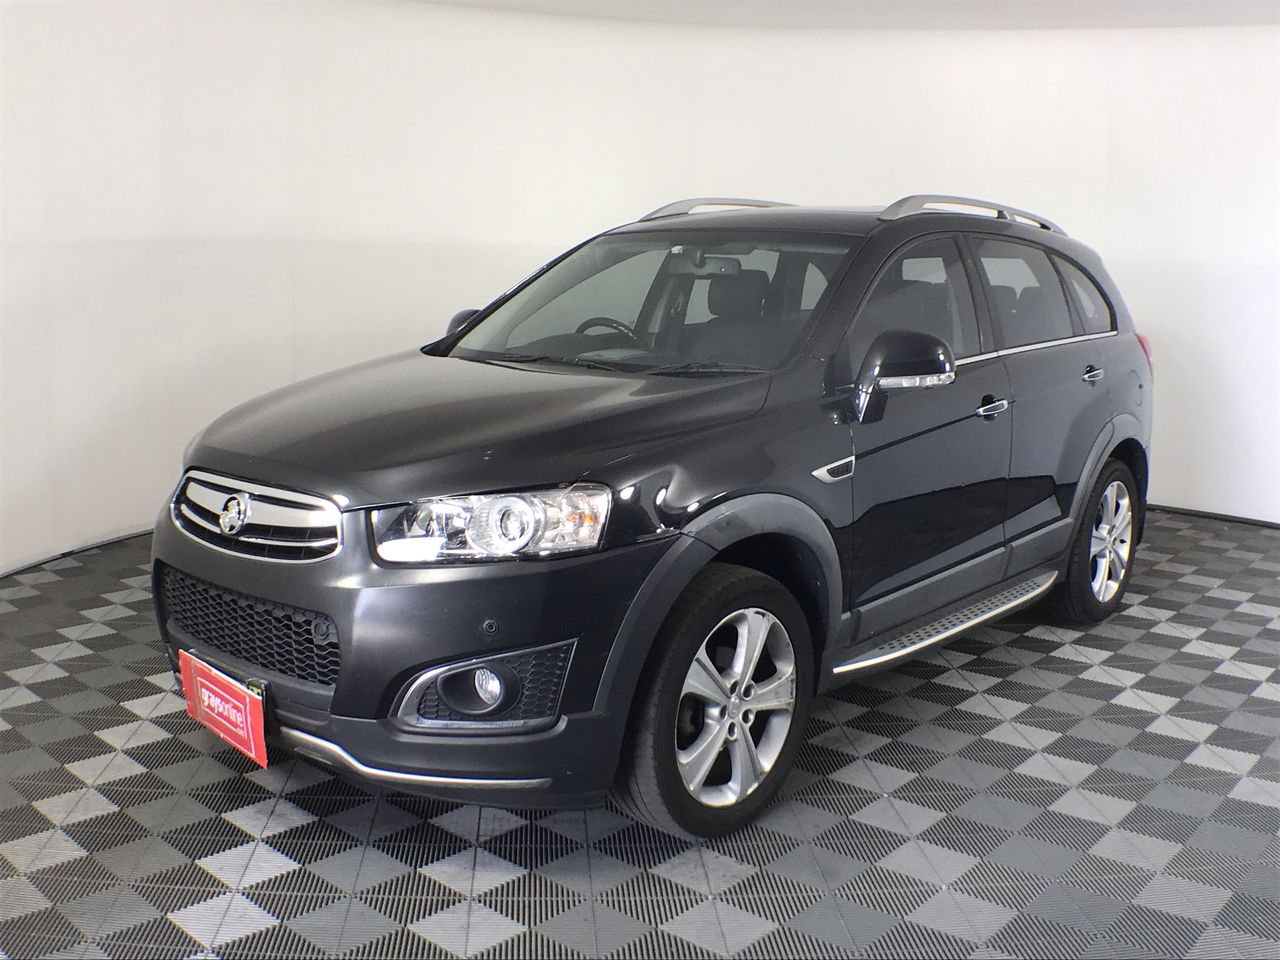 2015 Holden Captiva 7 LTZ AWD CG II Turbo Diesel Automatic 7 Seats Wagon